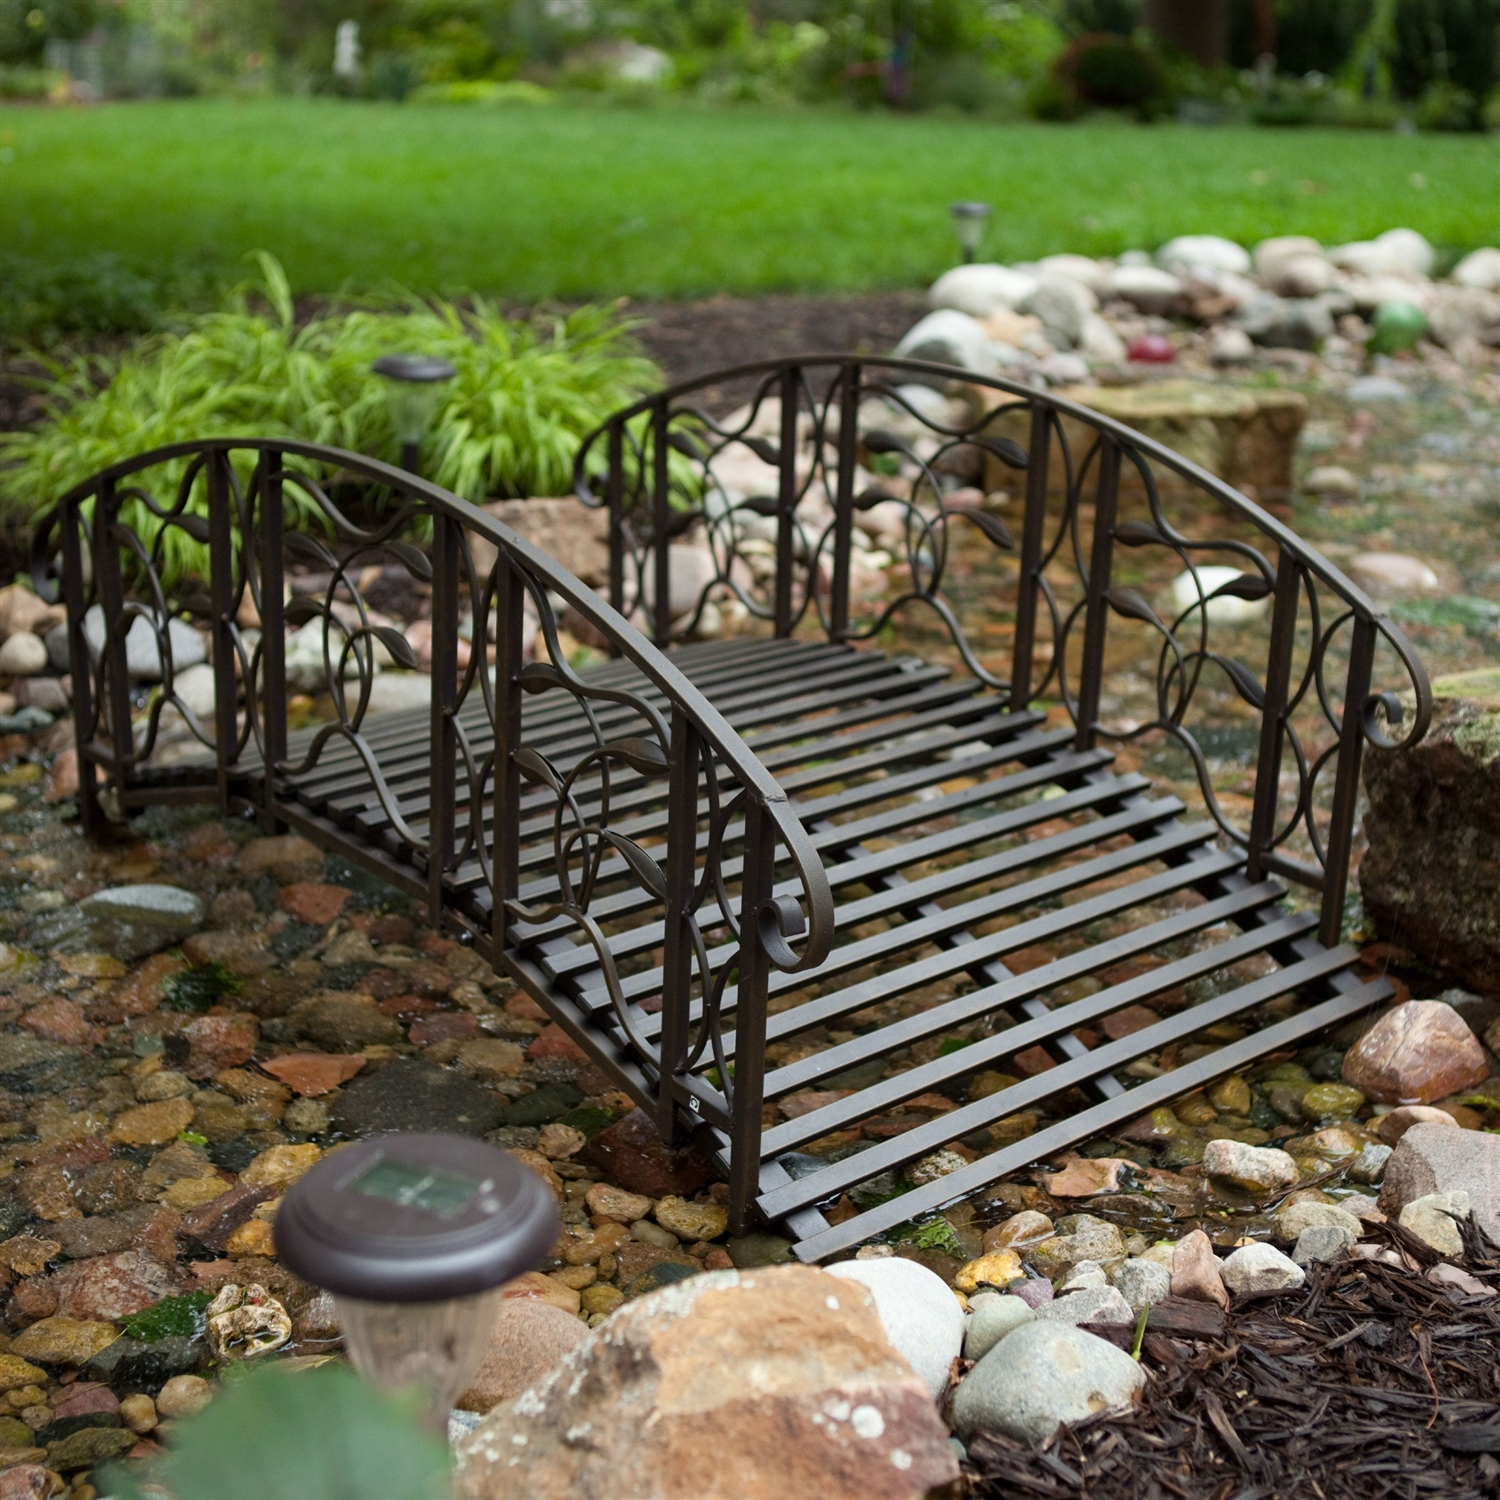 4 Foot Steel Frame Metal Garden Bridge In Rustic Weathered